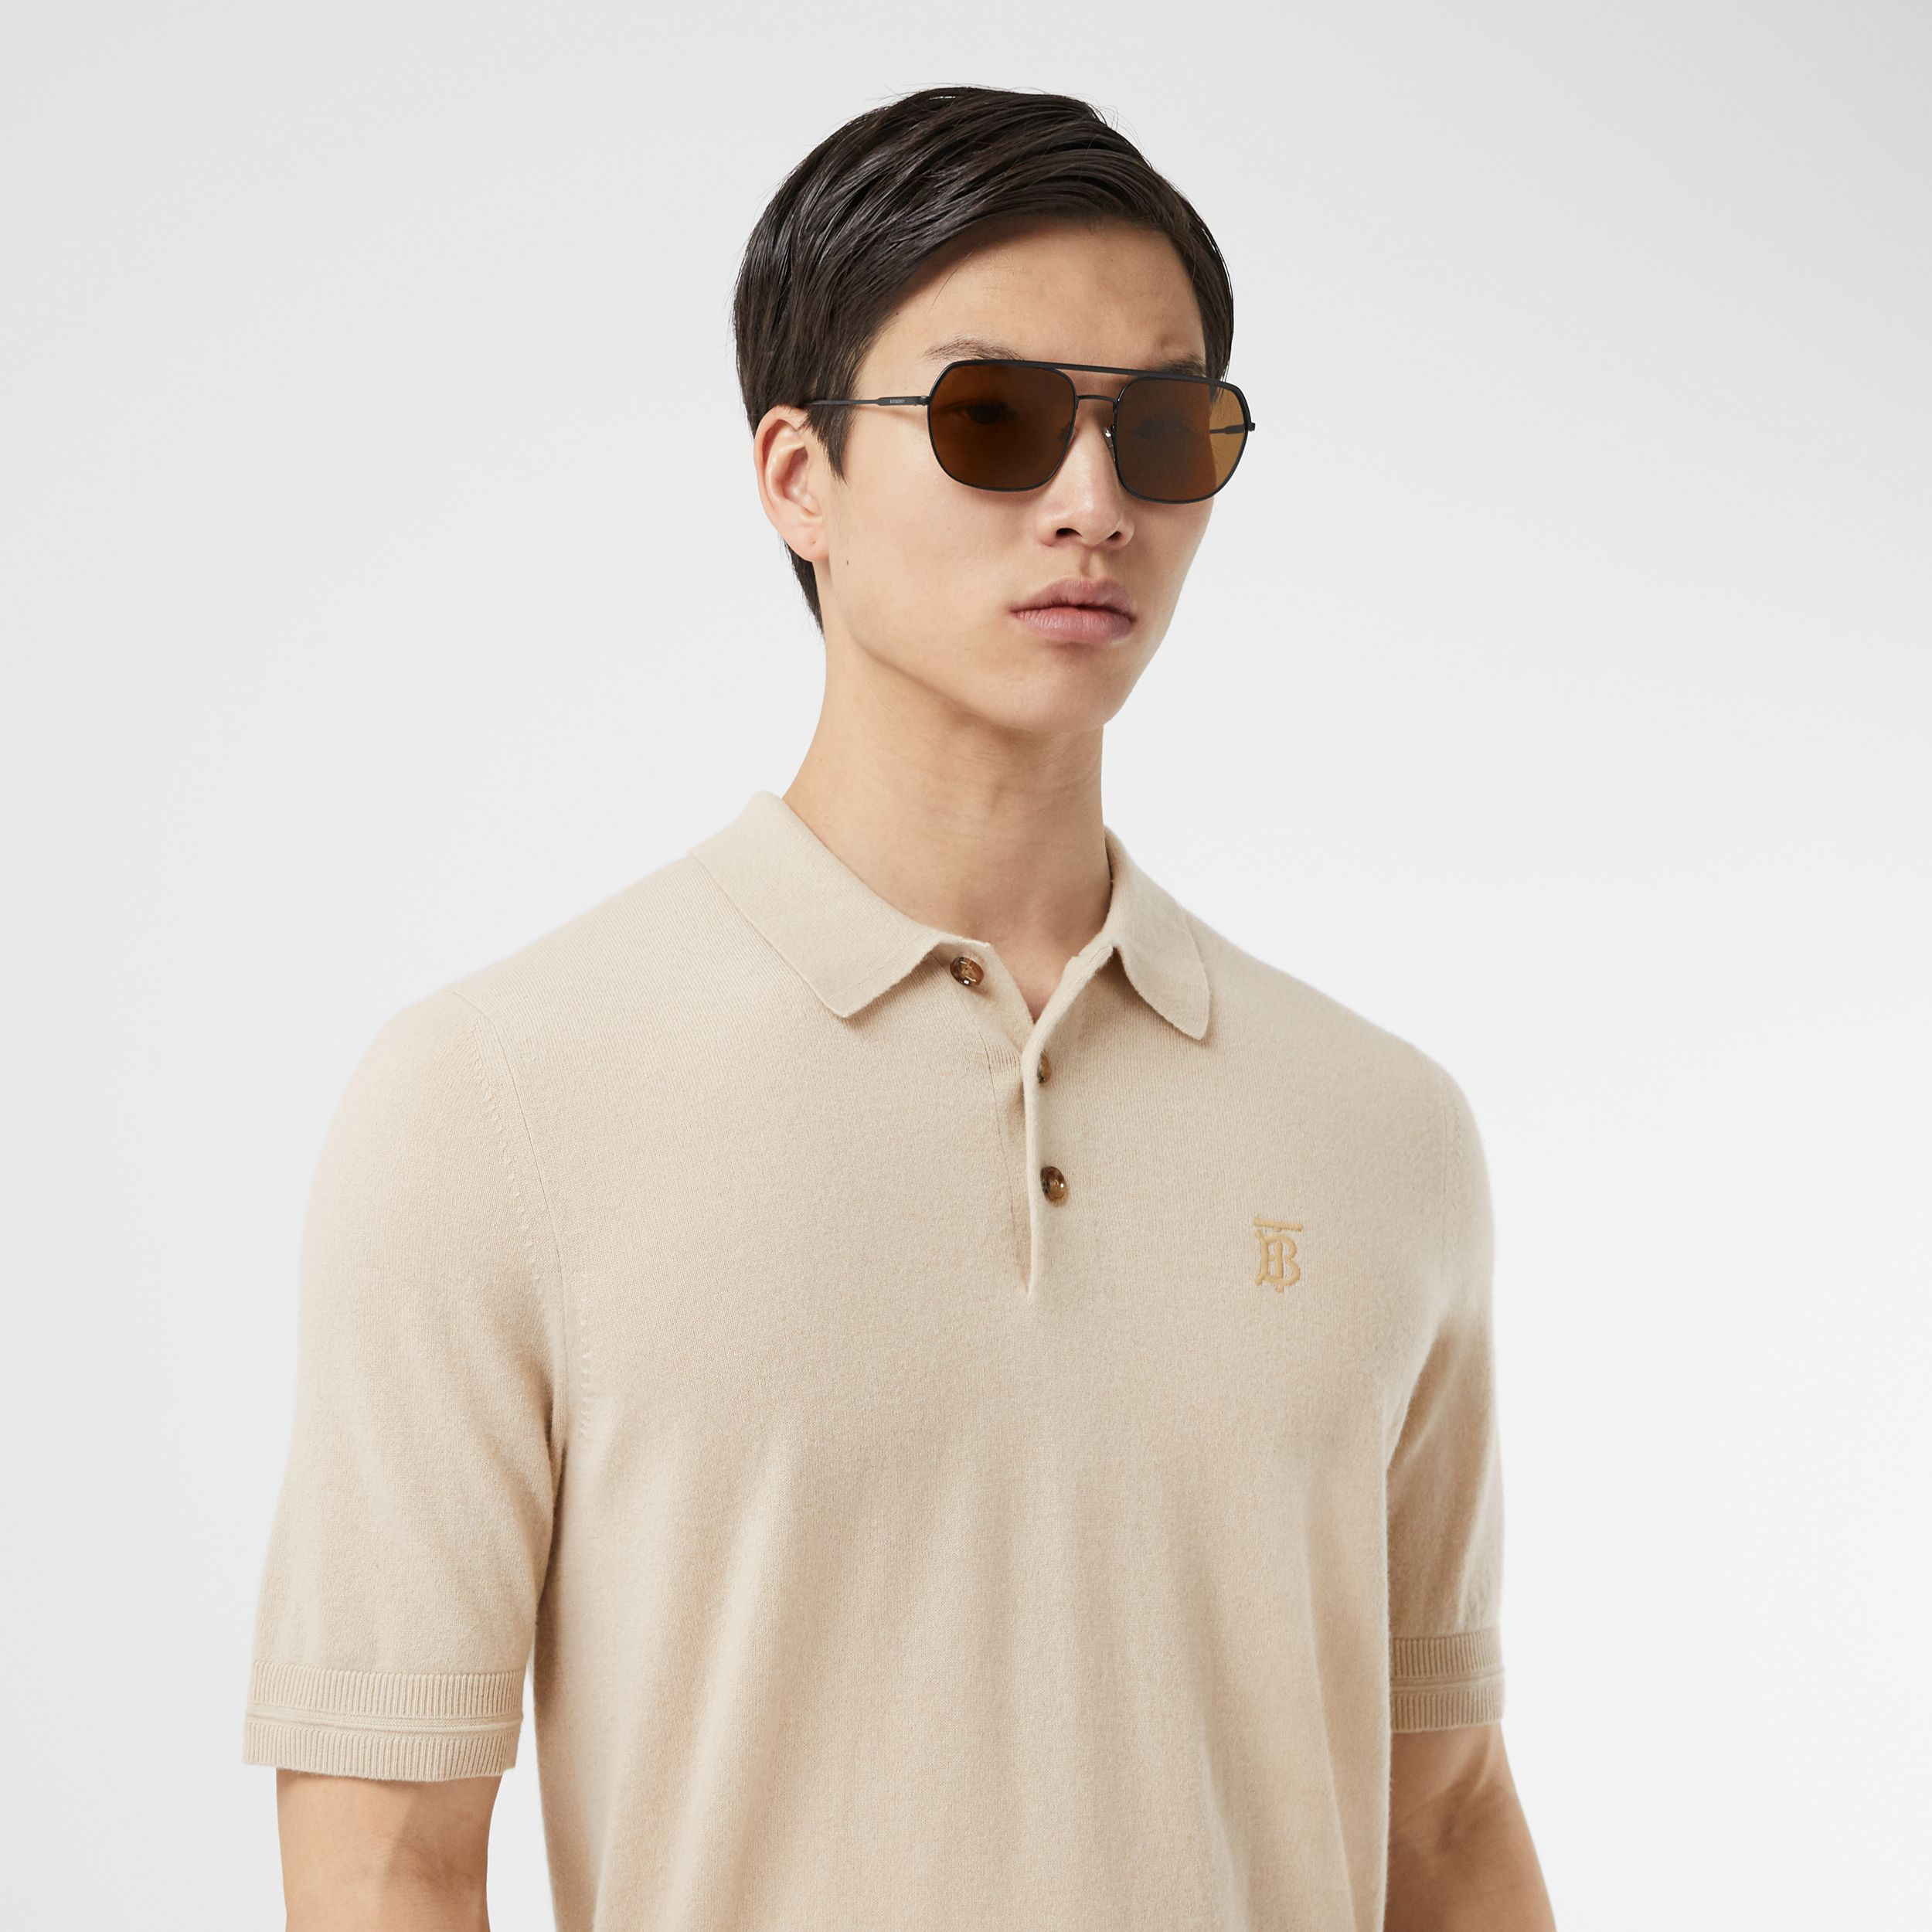 Monogram Motif Cashmere Polo Shirt in Soft Fawn - Men | Burberry Canada - 2